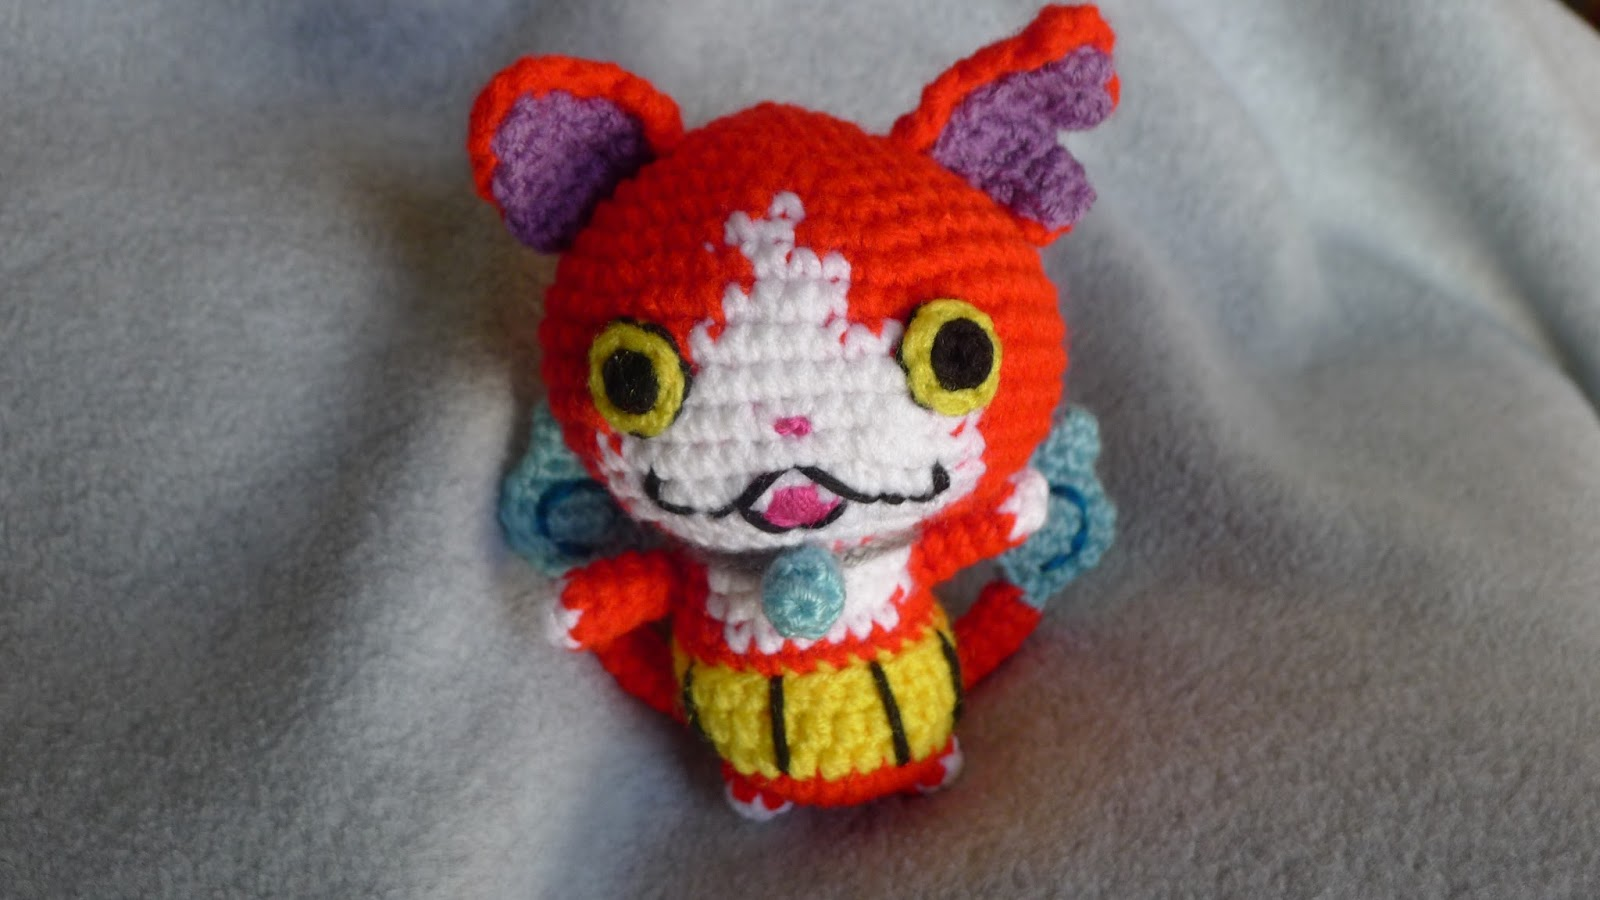 Crocheting Yo : ... mnopxs2.blogspot.com/2016/01/crochet-jibanyan-from-yo-kai-watch.html